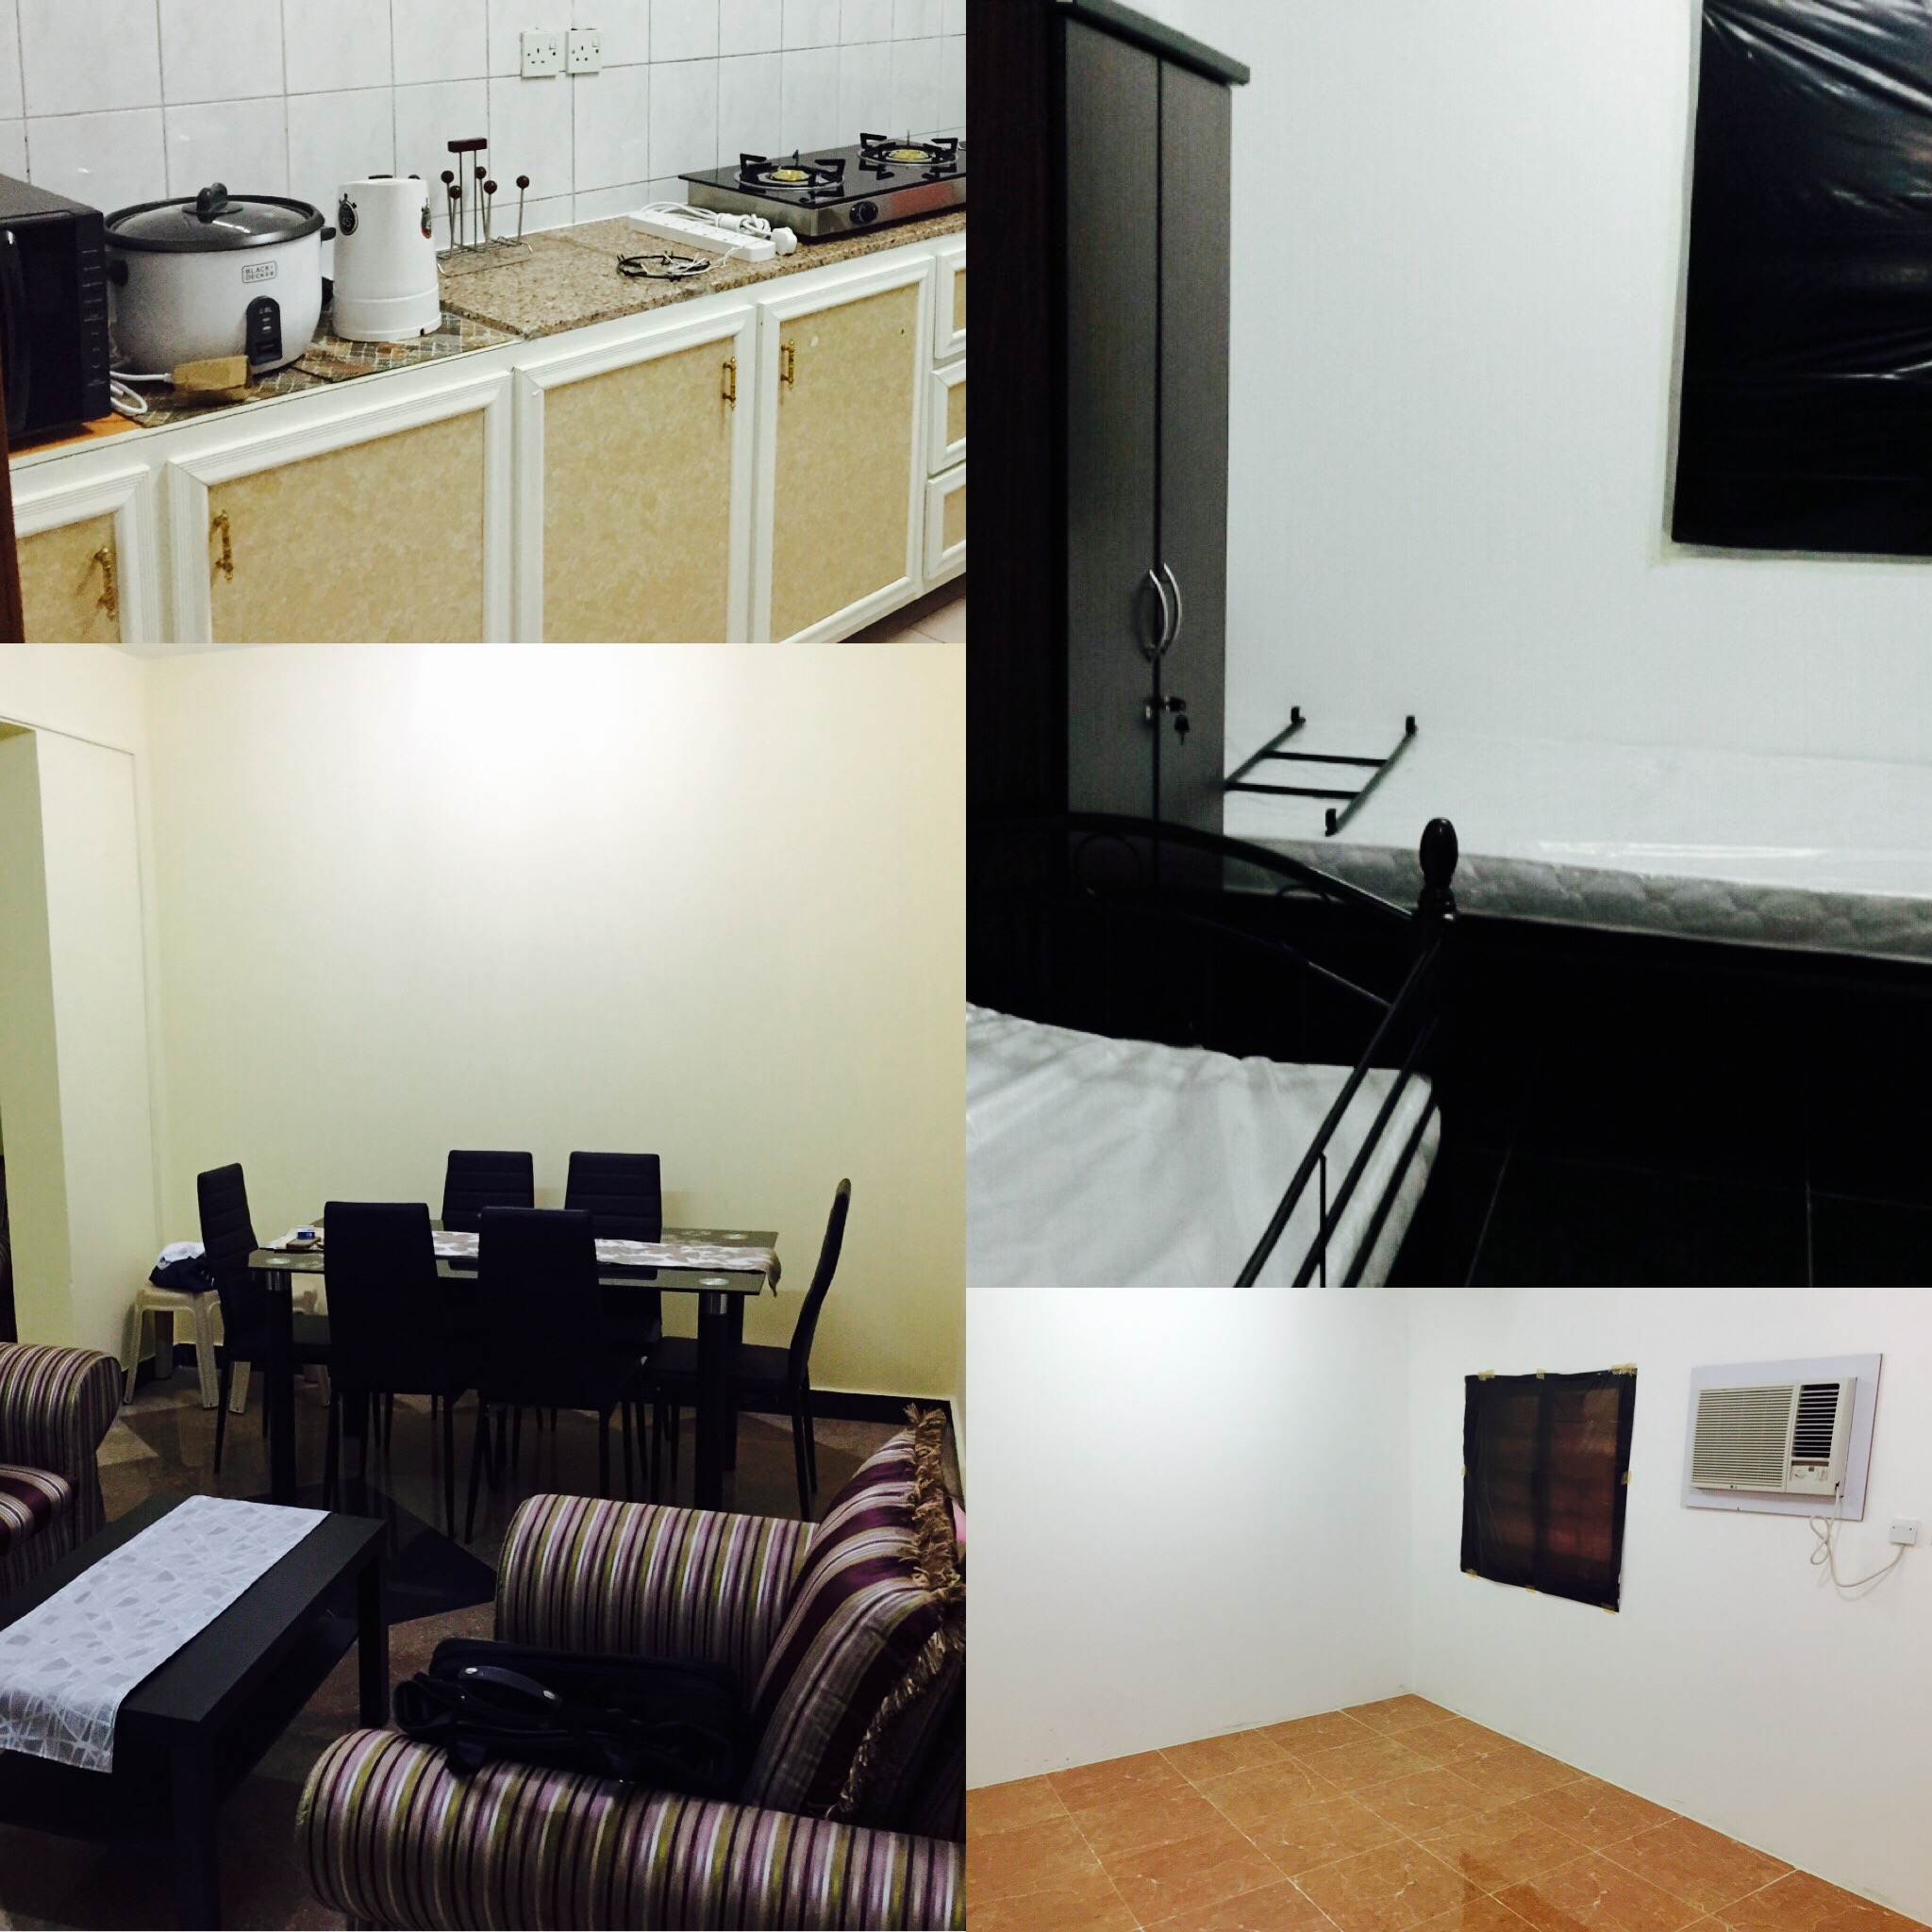 1 room for rent and bedspace bin mahmoud doha qatar living for Qatar living room for rent in matar qadeem